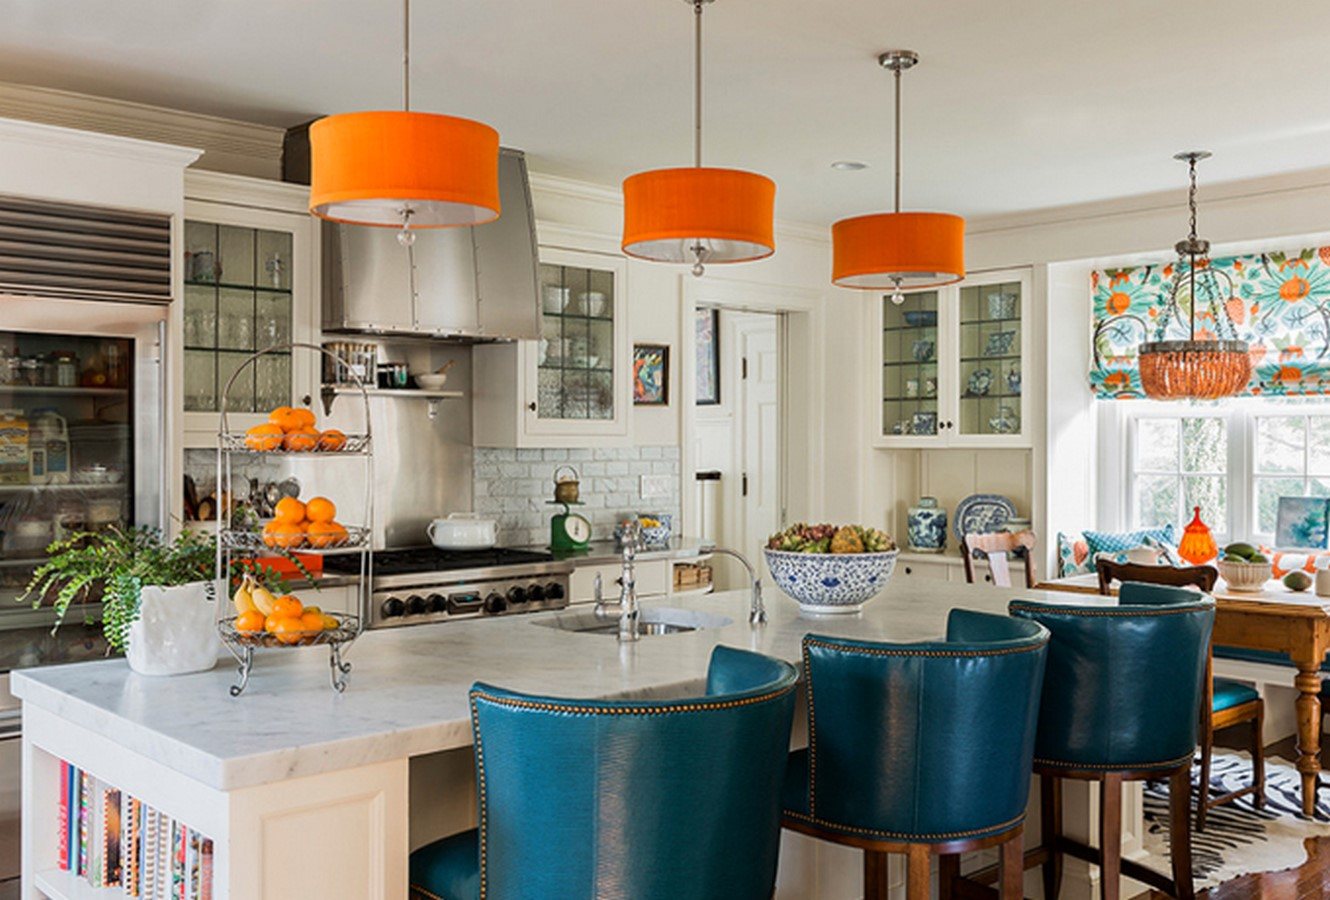 30 Examples of split complementary color scheme in Interiors - Sheet30